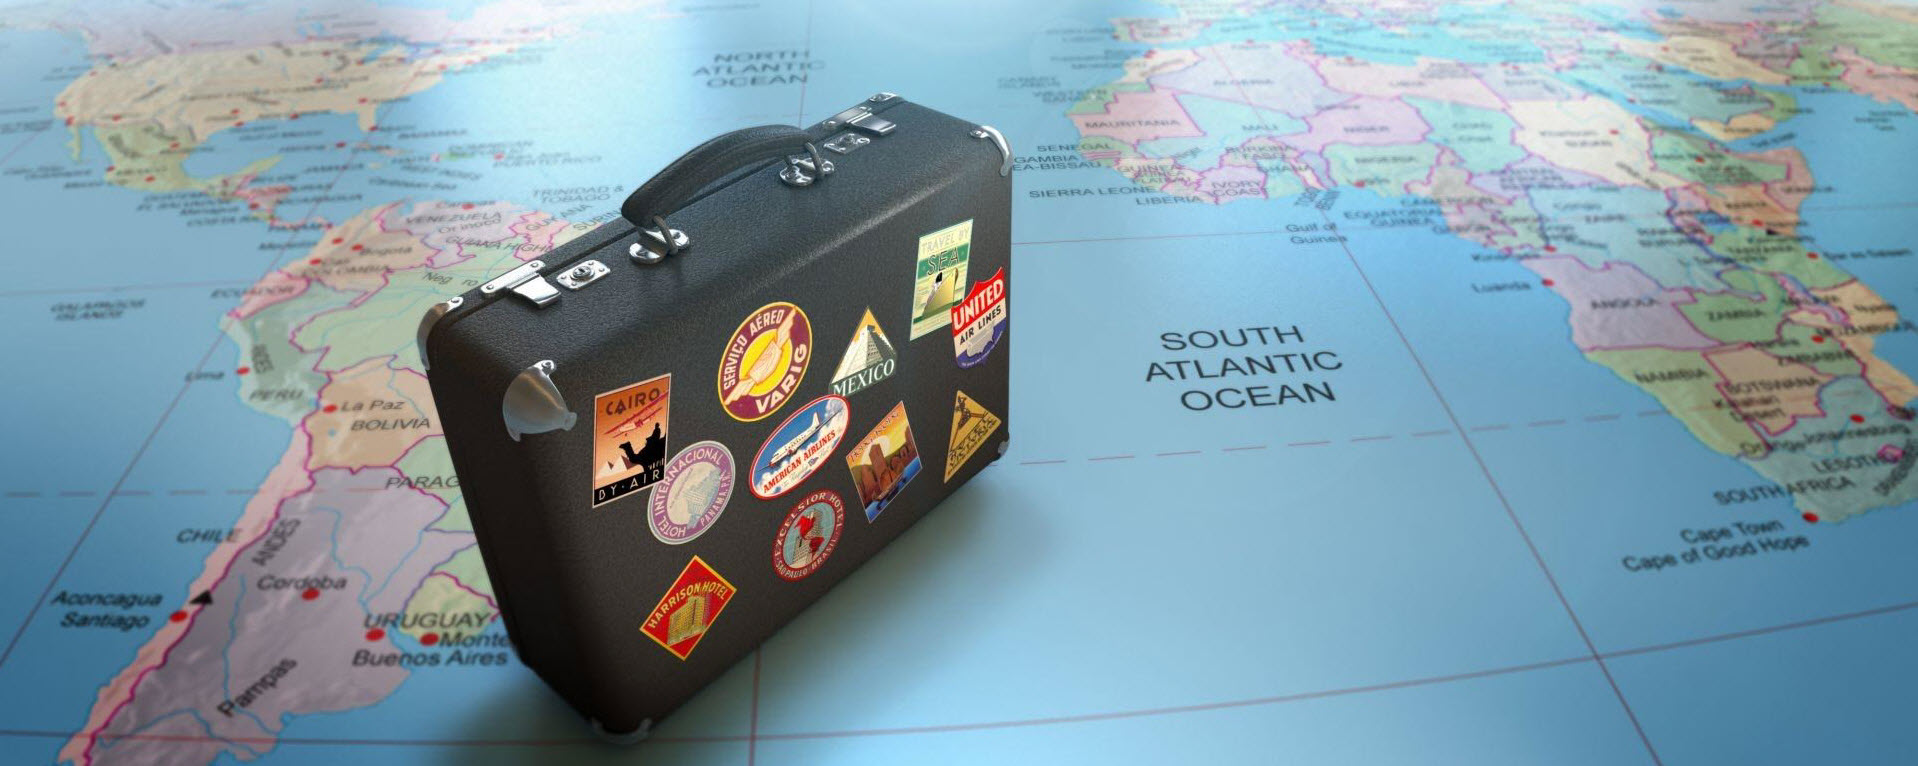 Suitcase sitting on a world map